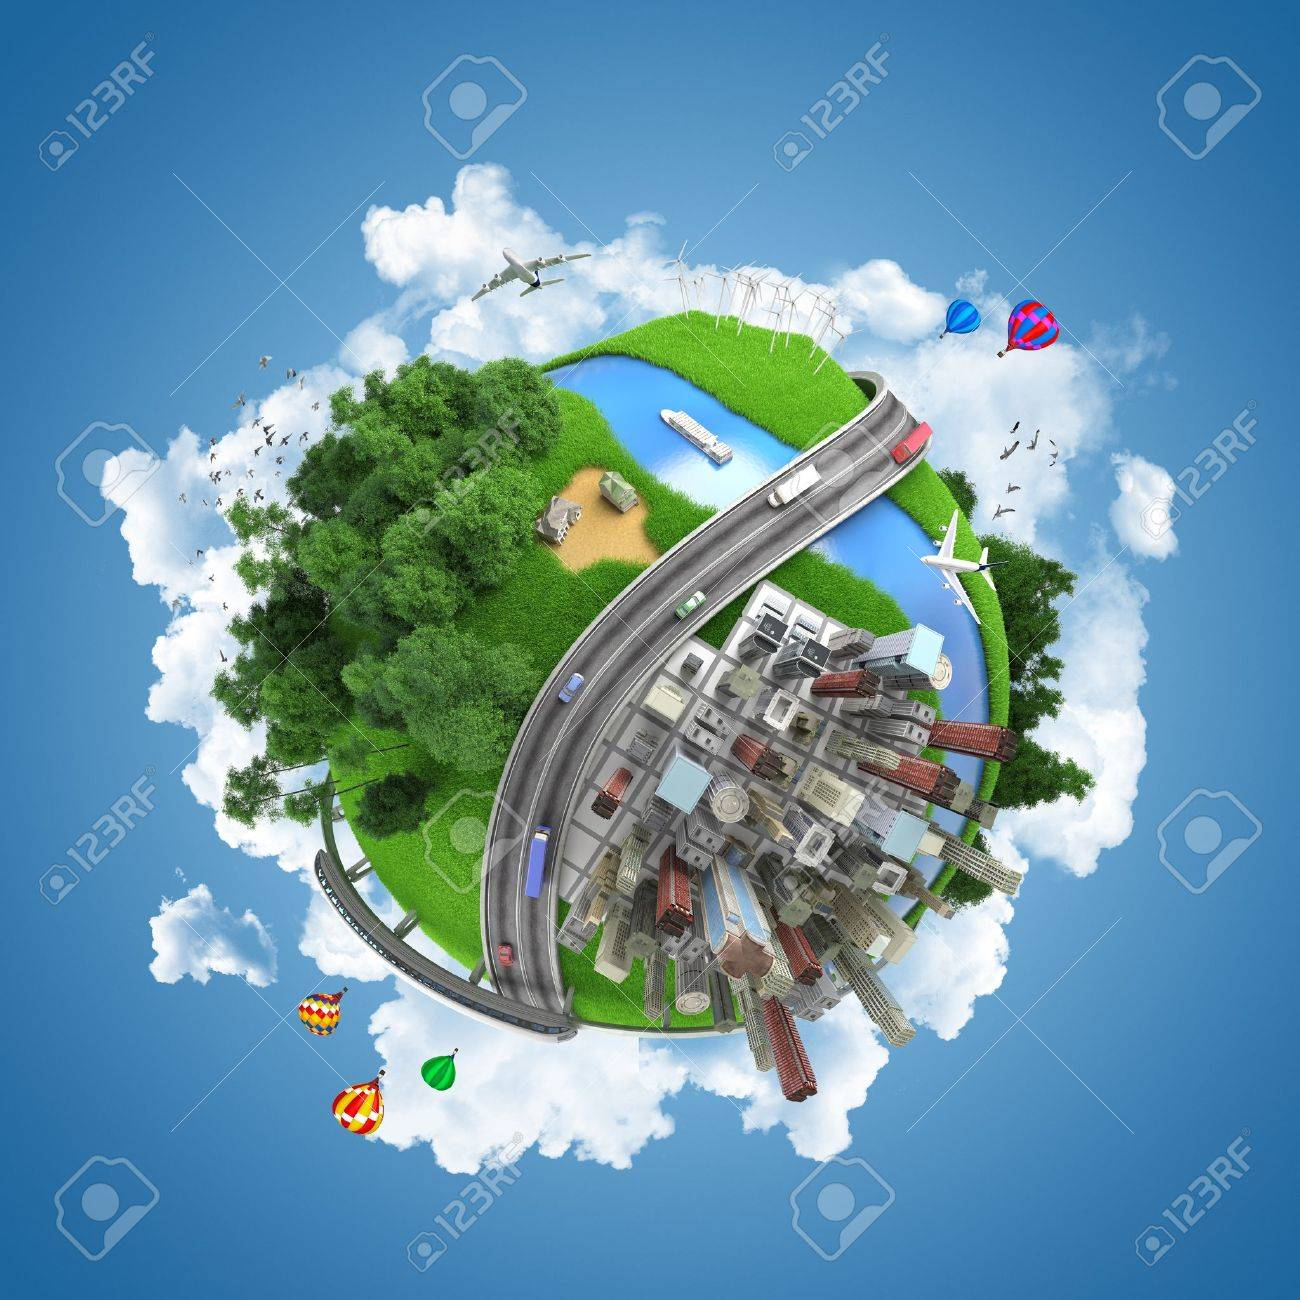 globe concept showing the various modes of transport and life styles in the world Stock Photo - 14182000